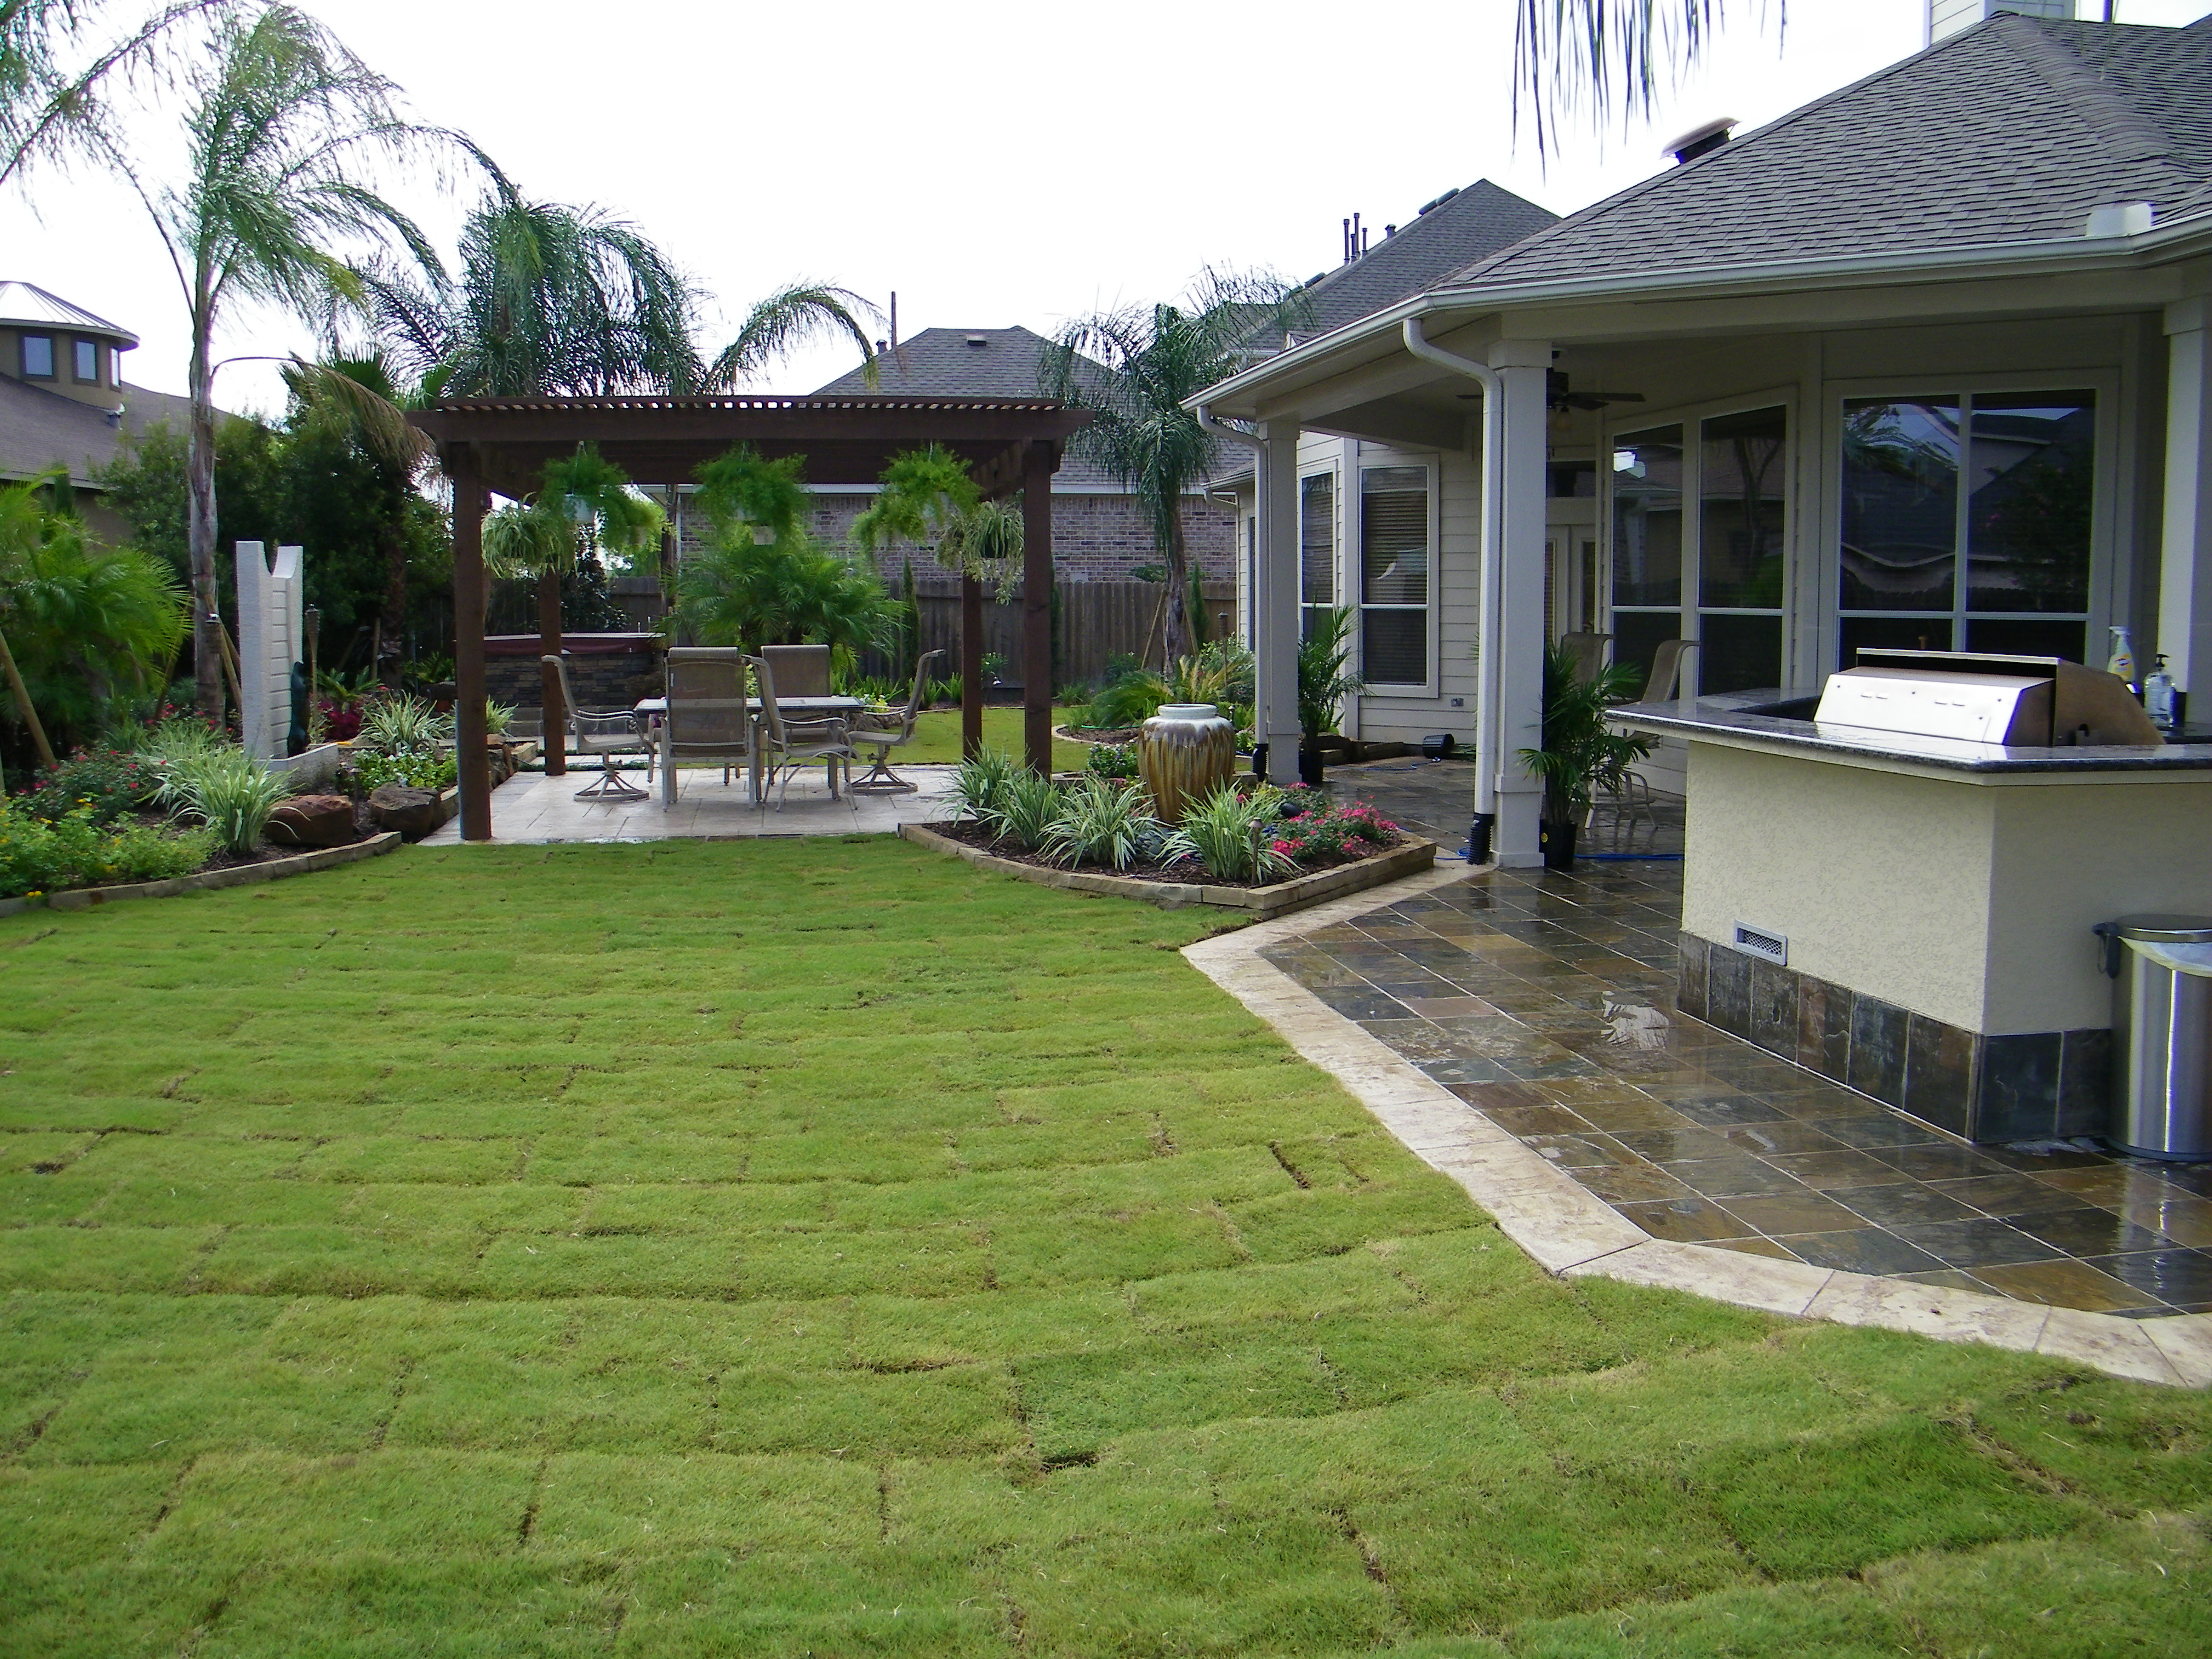 landscaping_51